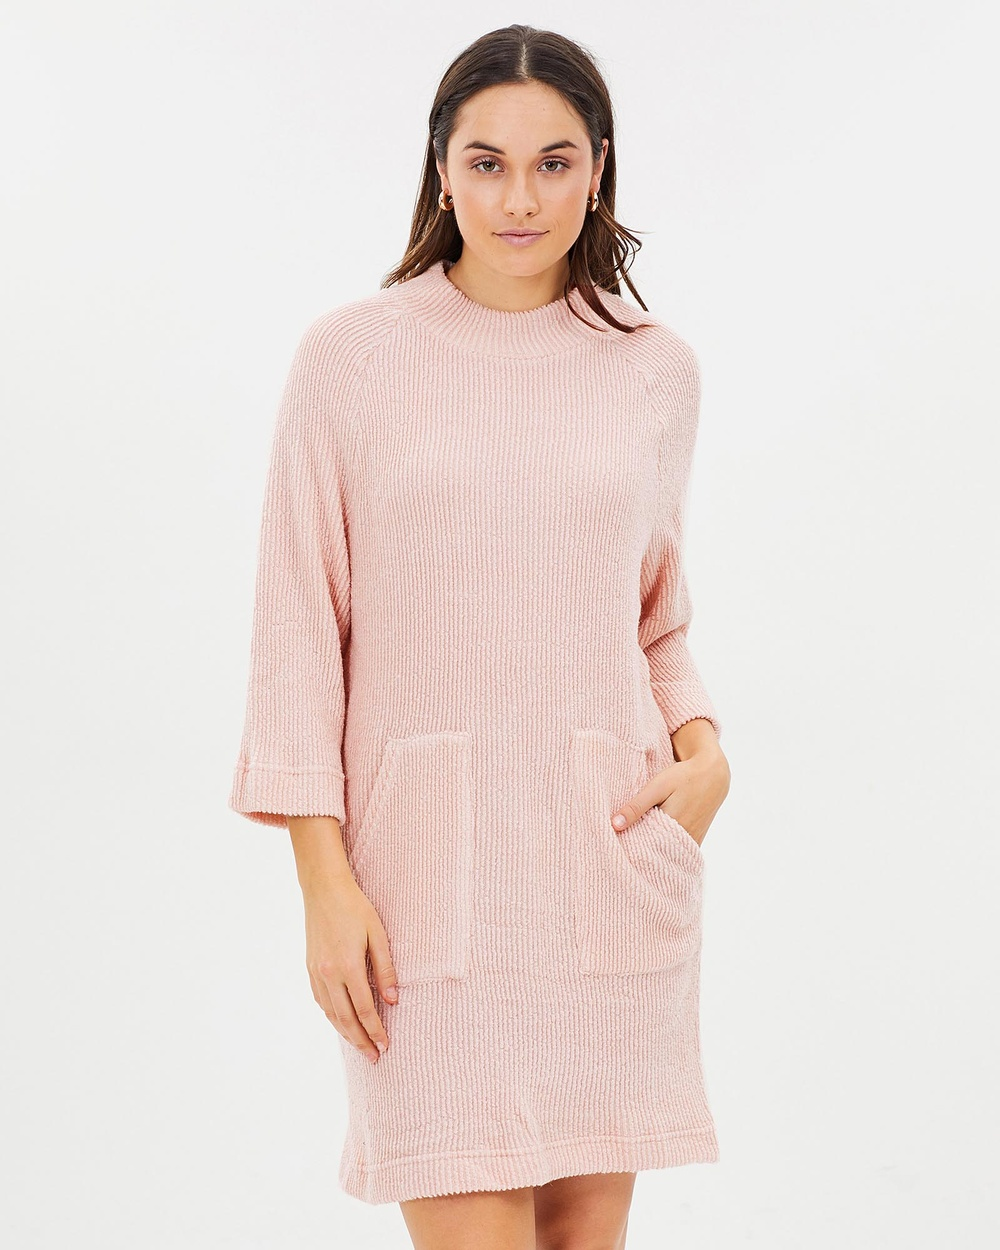 Privilege Witchcraft Oversized Tunic Dress Dresses Baby Pink Witchcraft Oversized Tunic Dress